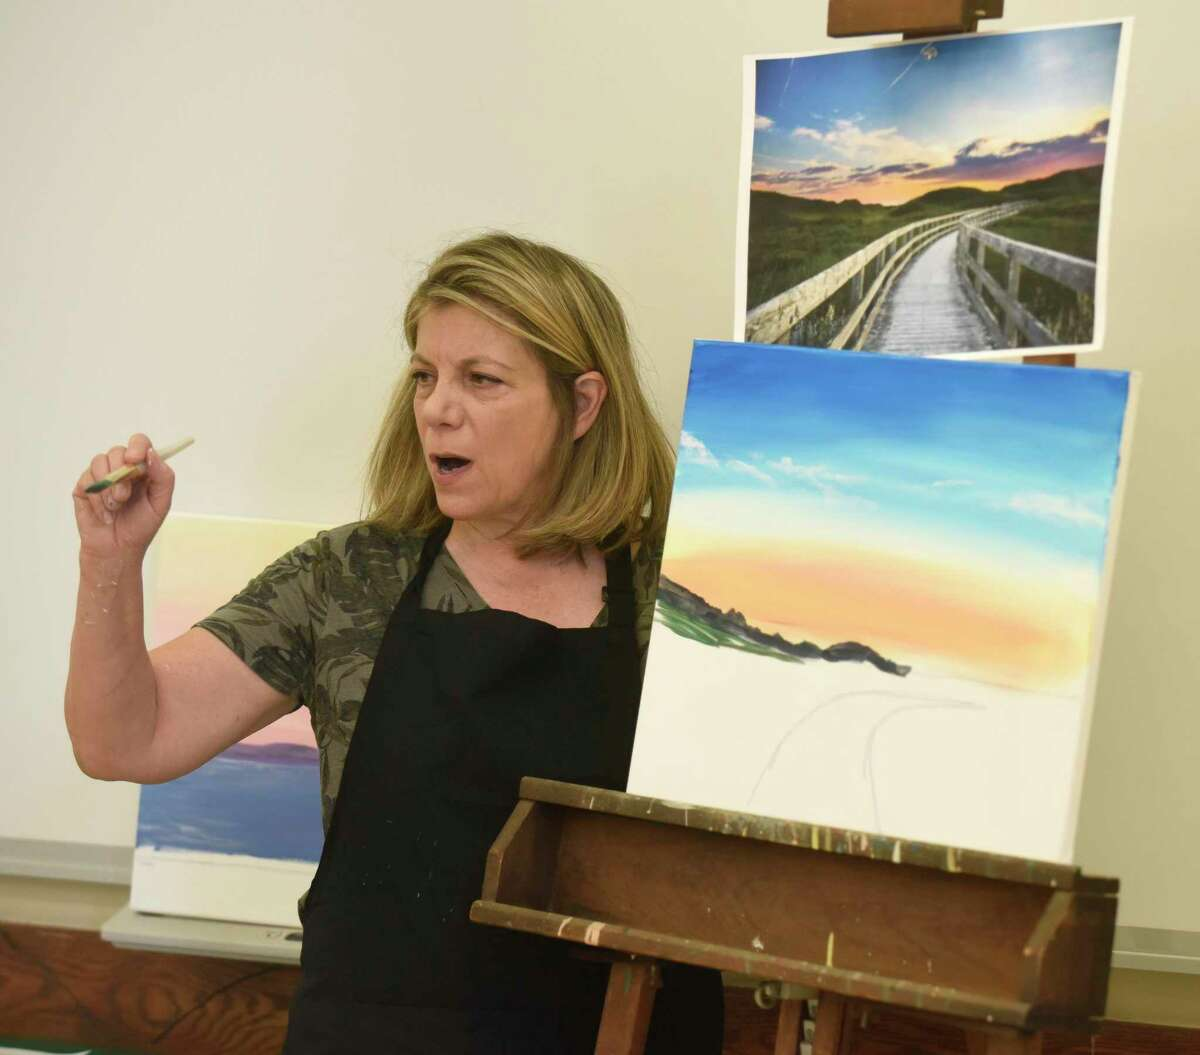 Lorraine Gelard leads a painting class at the Greenwich Senior Center in Greenwich, Conn. Tuesday, June 8, 2021. The painting class, which started last week, is the first on-site, in-person activity available again at the Senior Center since it closed down for COVID more than a year ago.